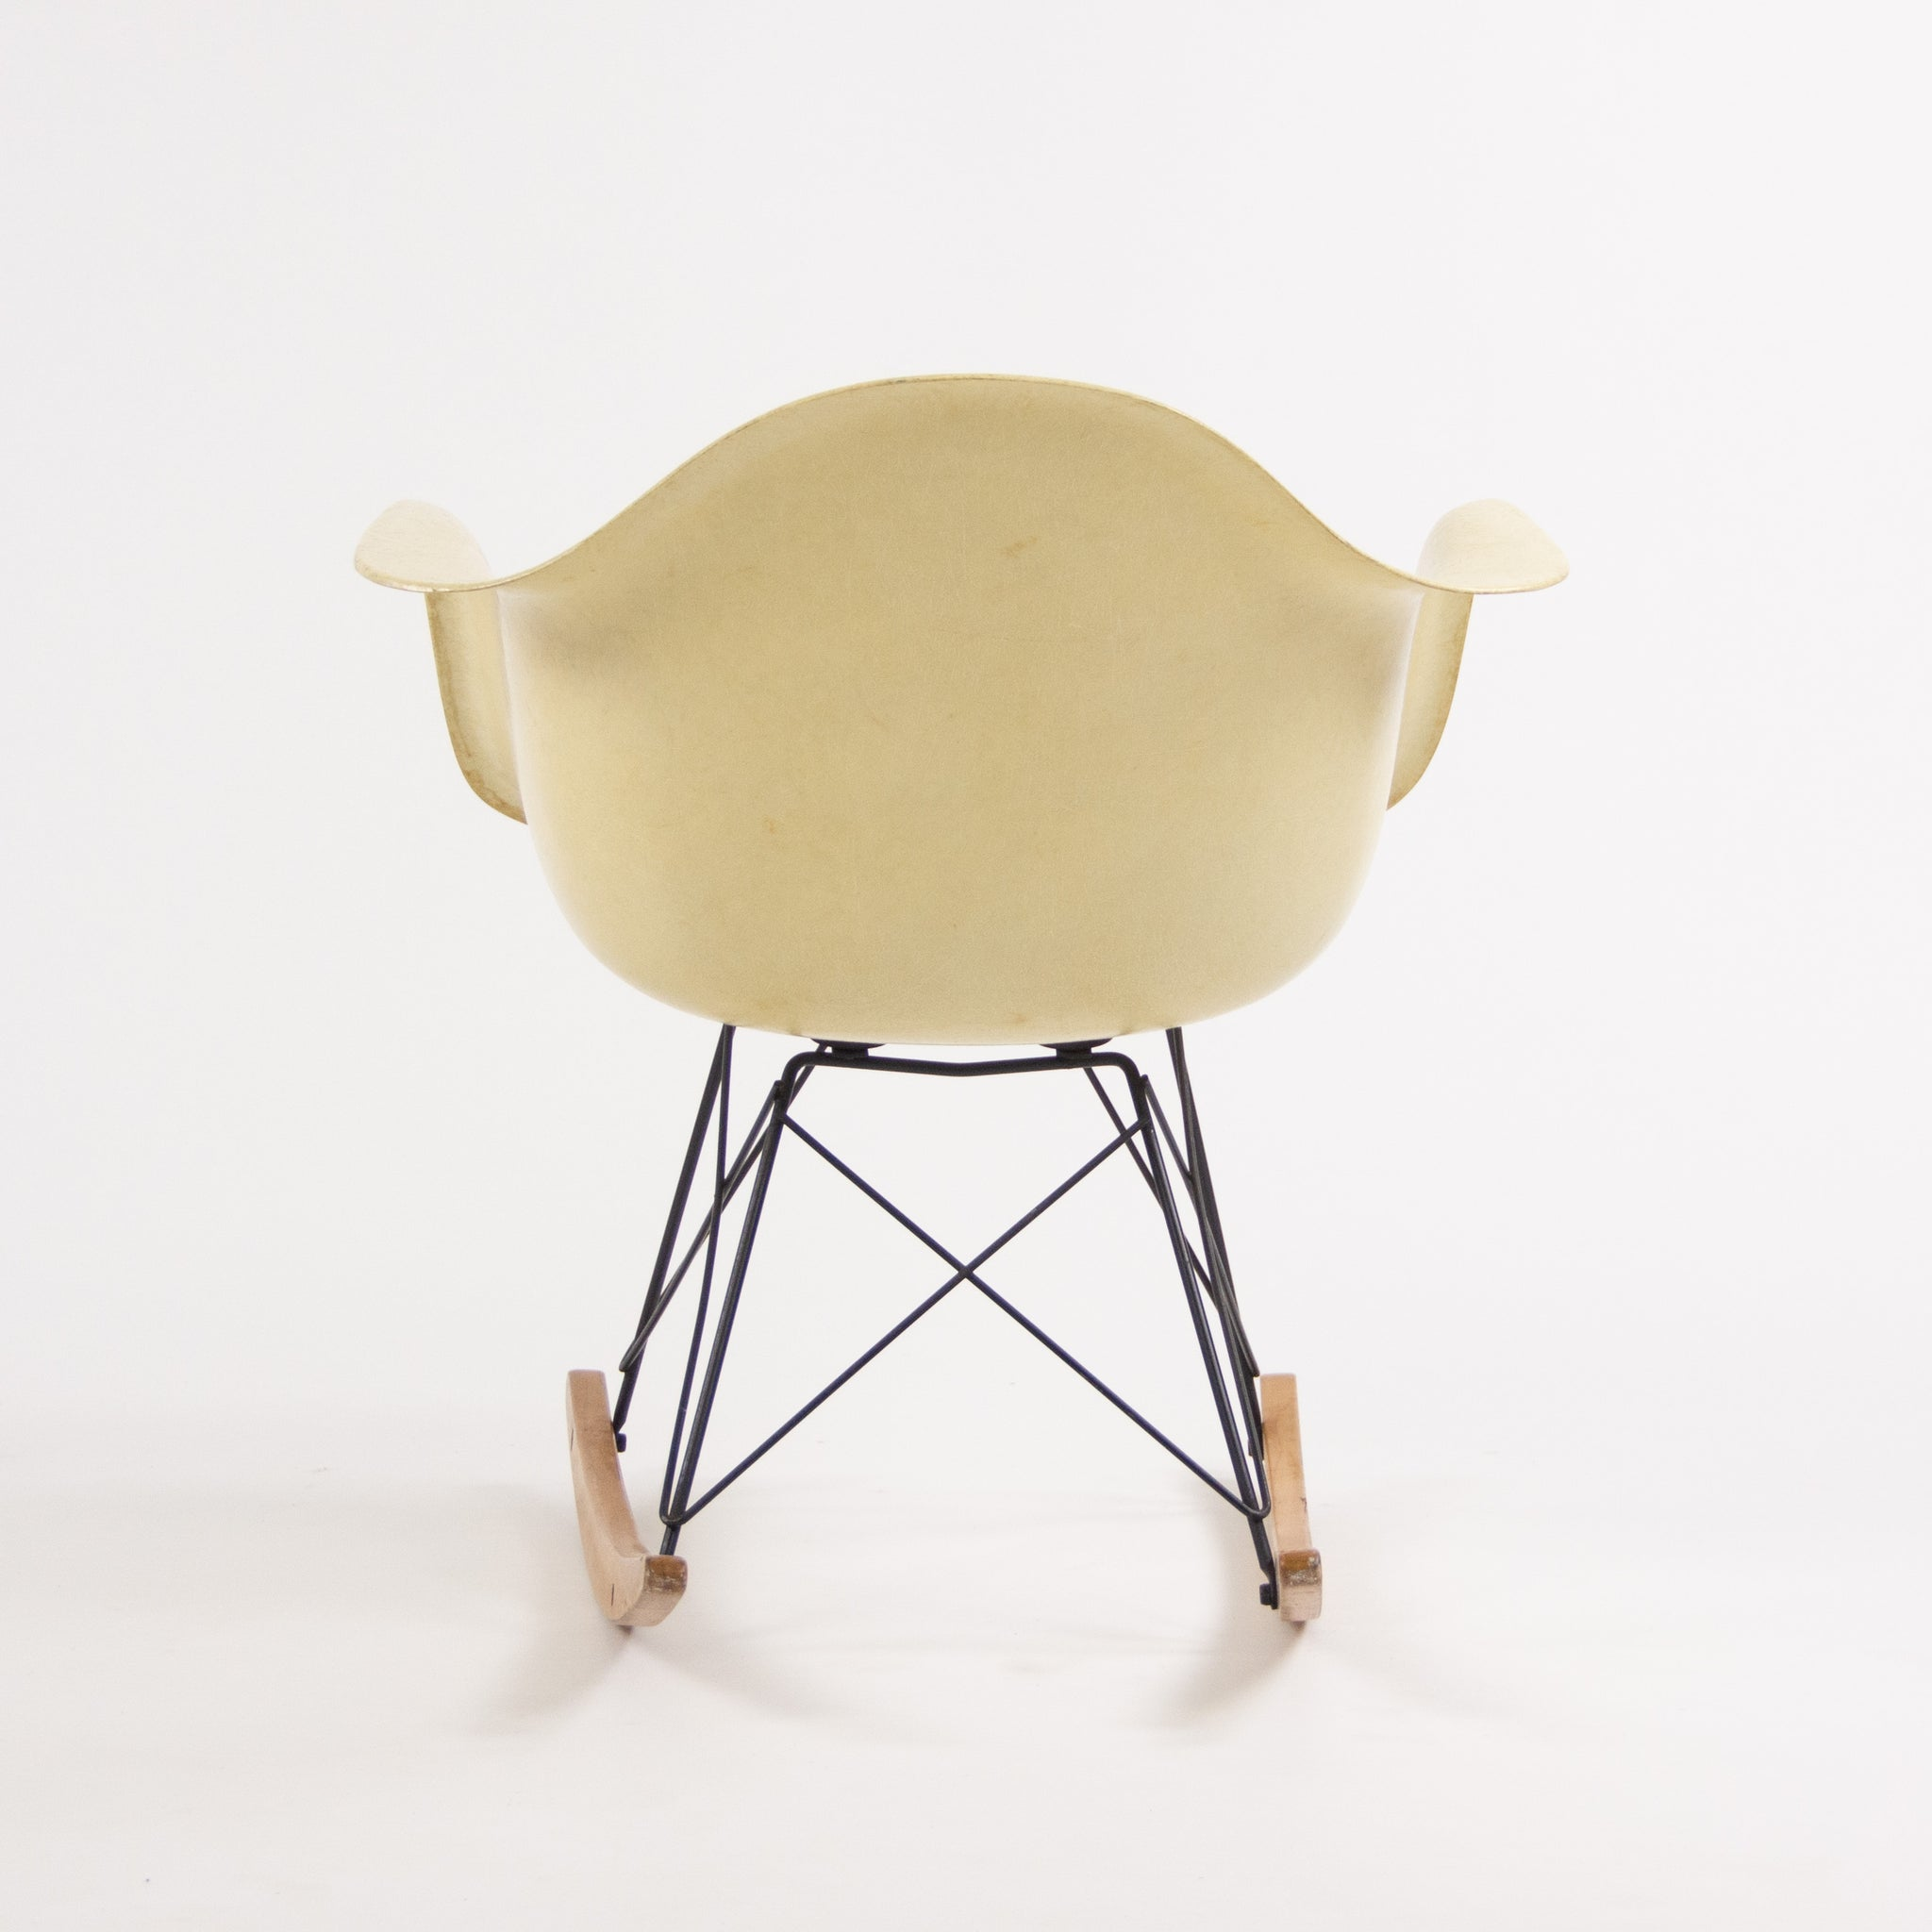 SOLD 1950's Eames Herman Miller RAR Armshell Fiberglass Parchment Rocking Chair